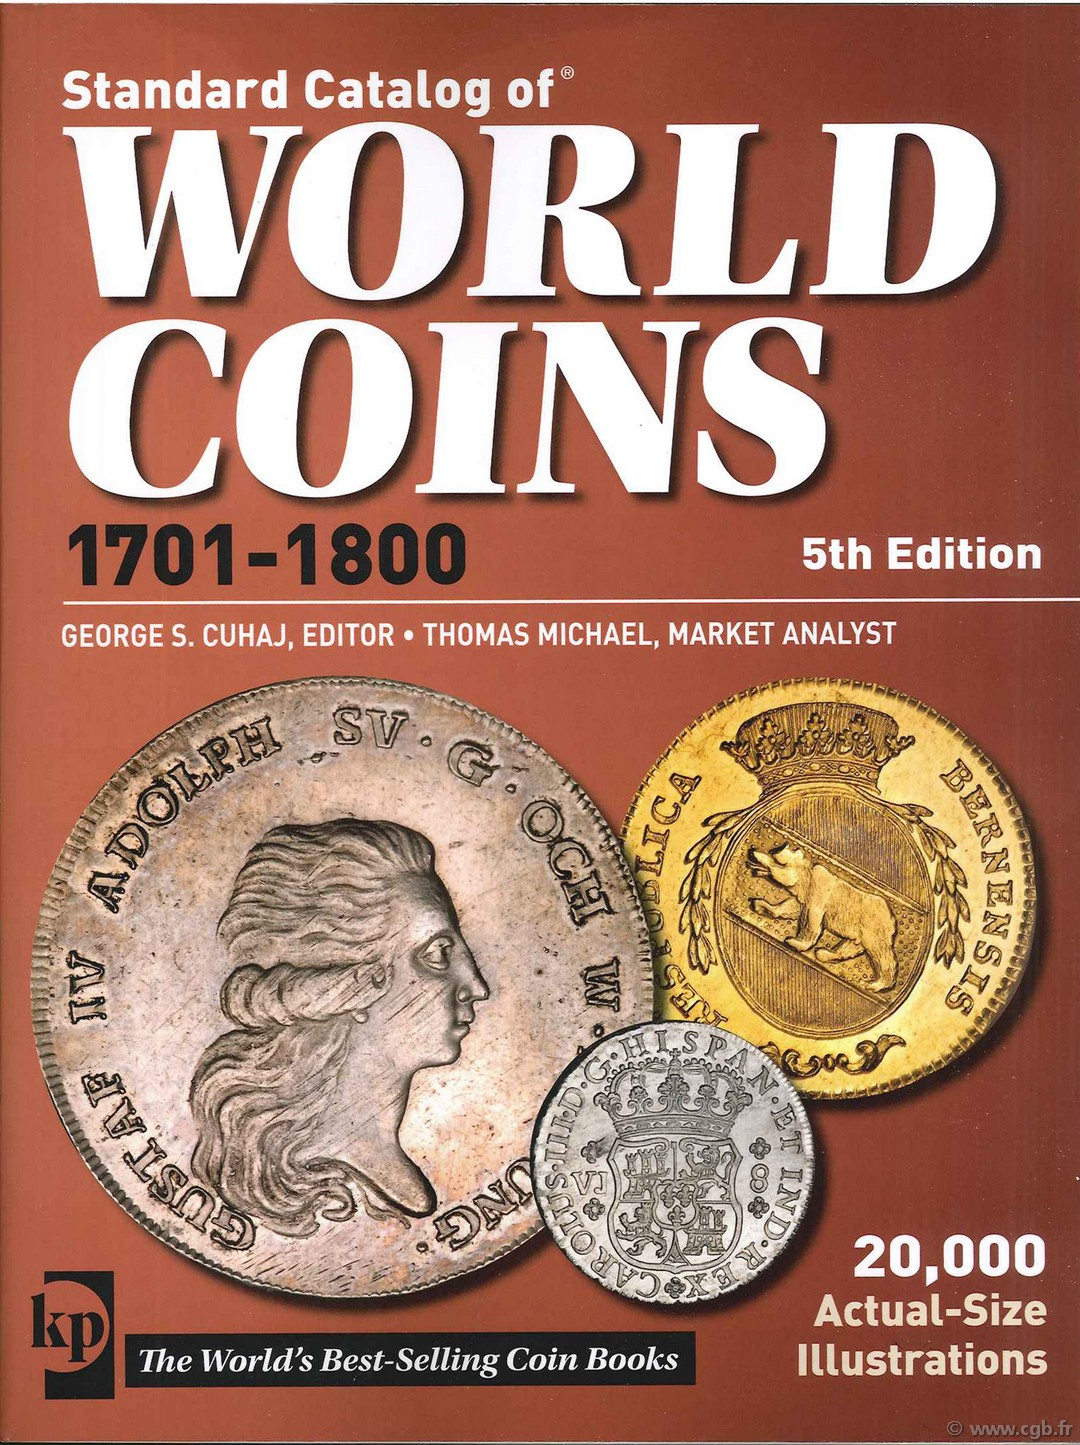 Standard catalog of world coins - 1701-1800 - 5th edition sous la supervision de Colin R. BRUCE II, avec Thomas MICHAEL